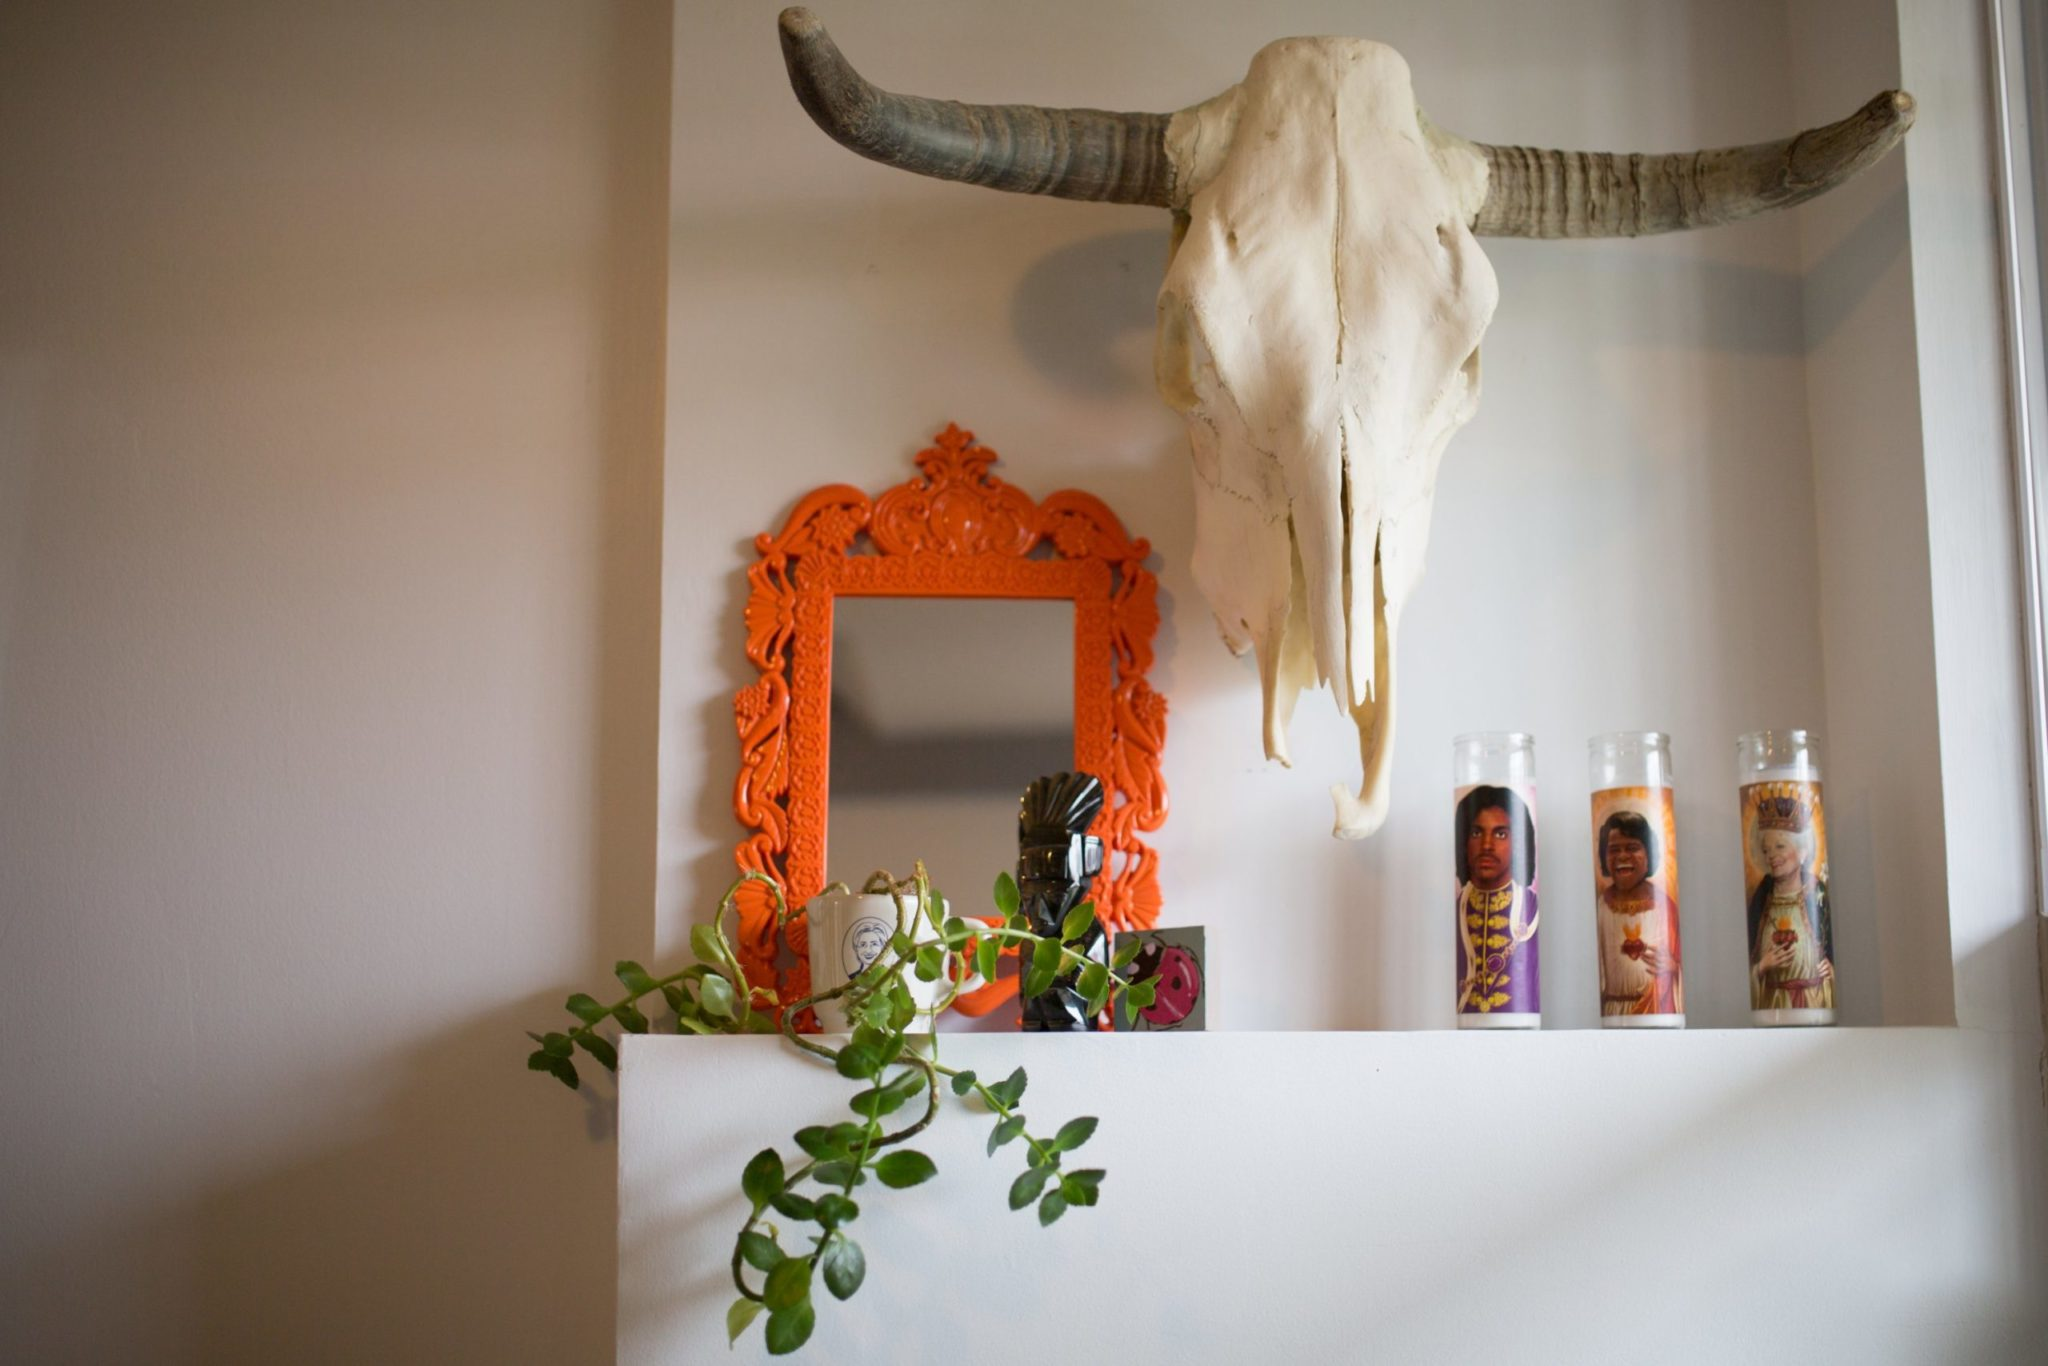 Look Inside My Home: A Colorful, Quirky House in Columbia Heights (With Cowhide!)